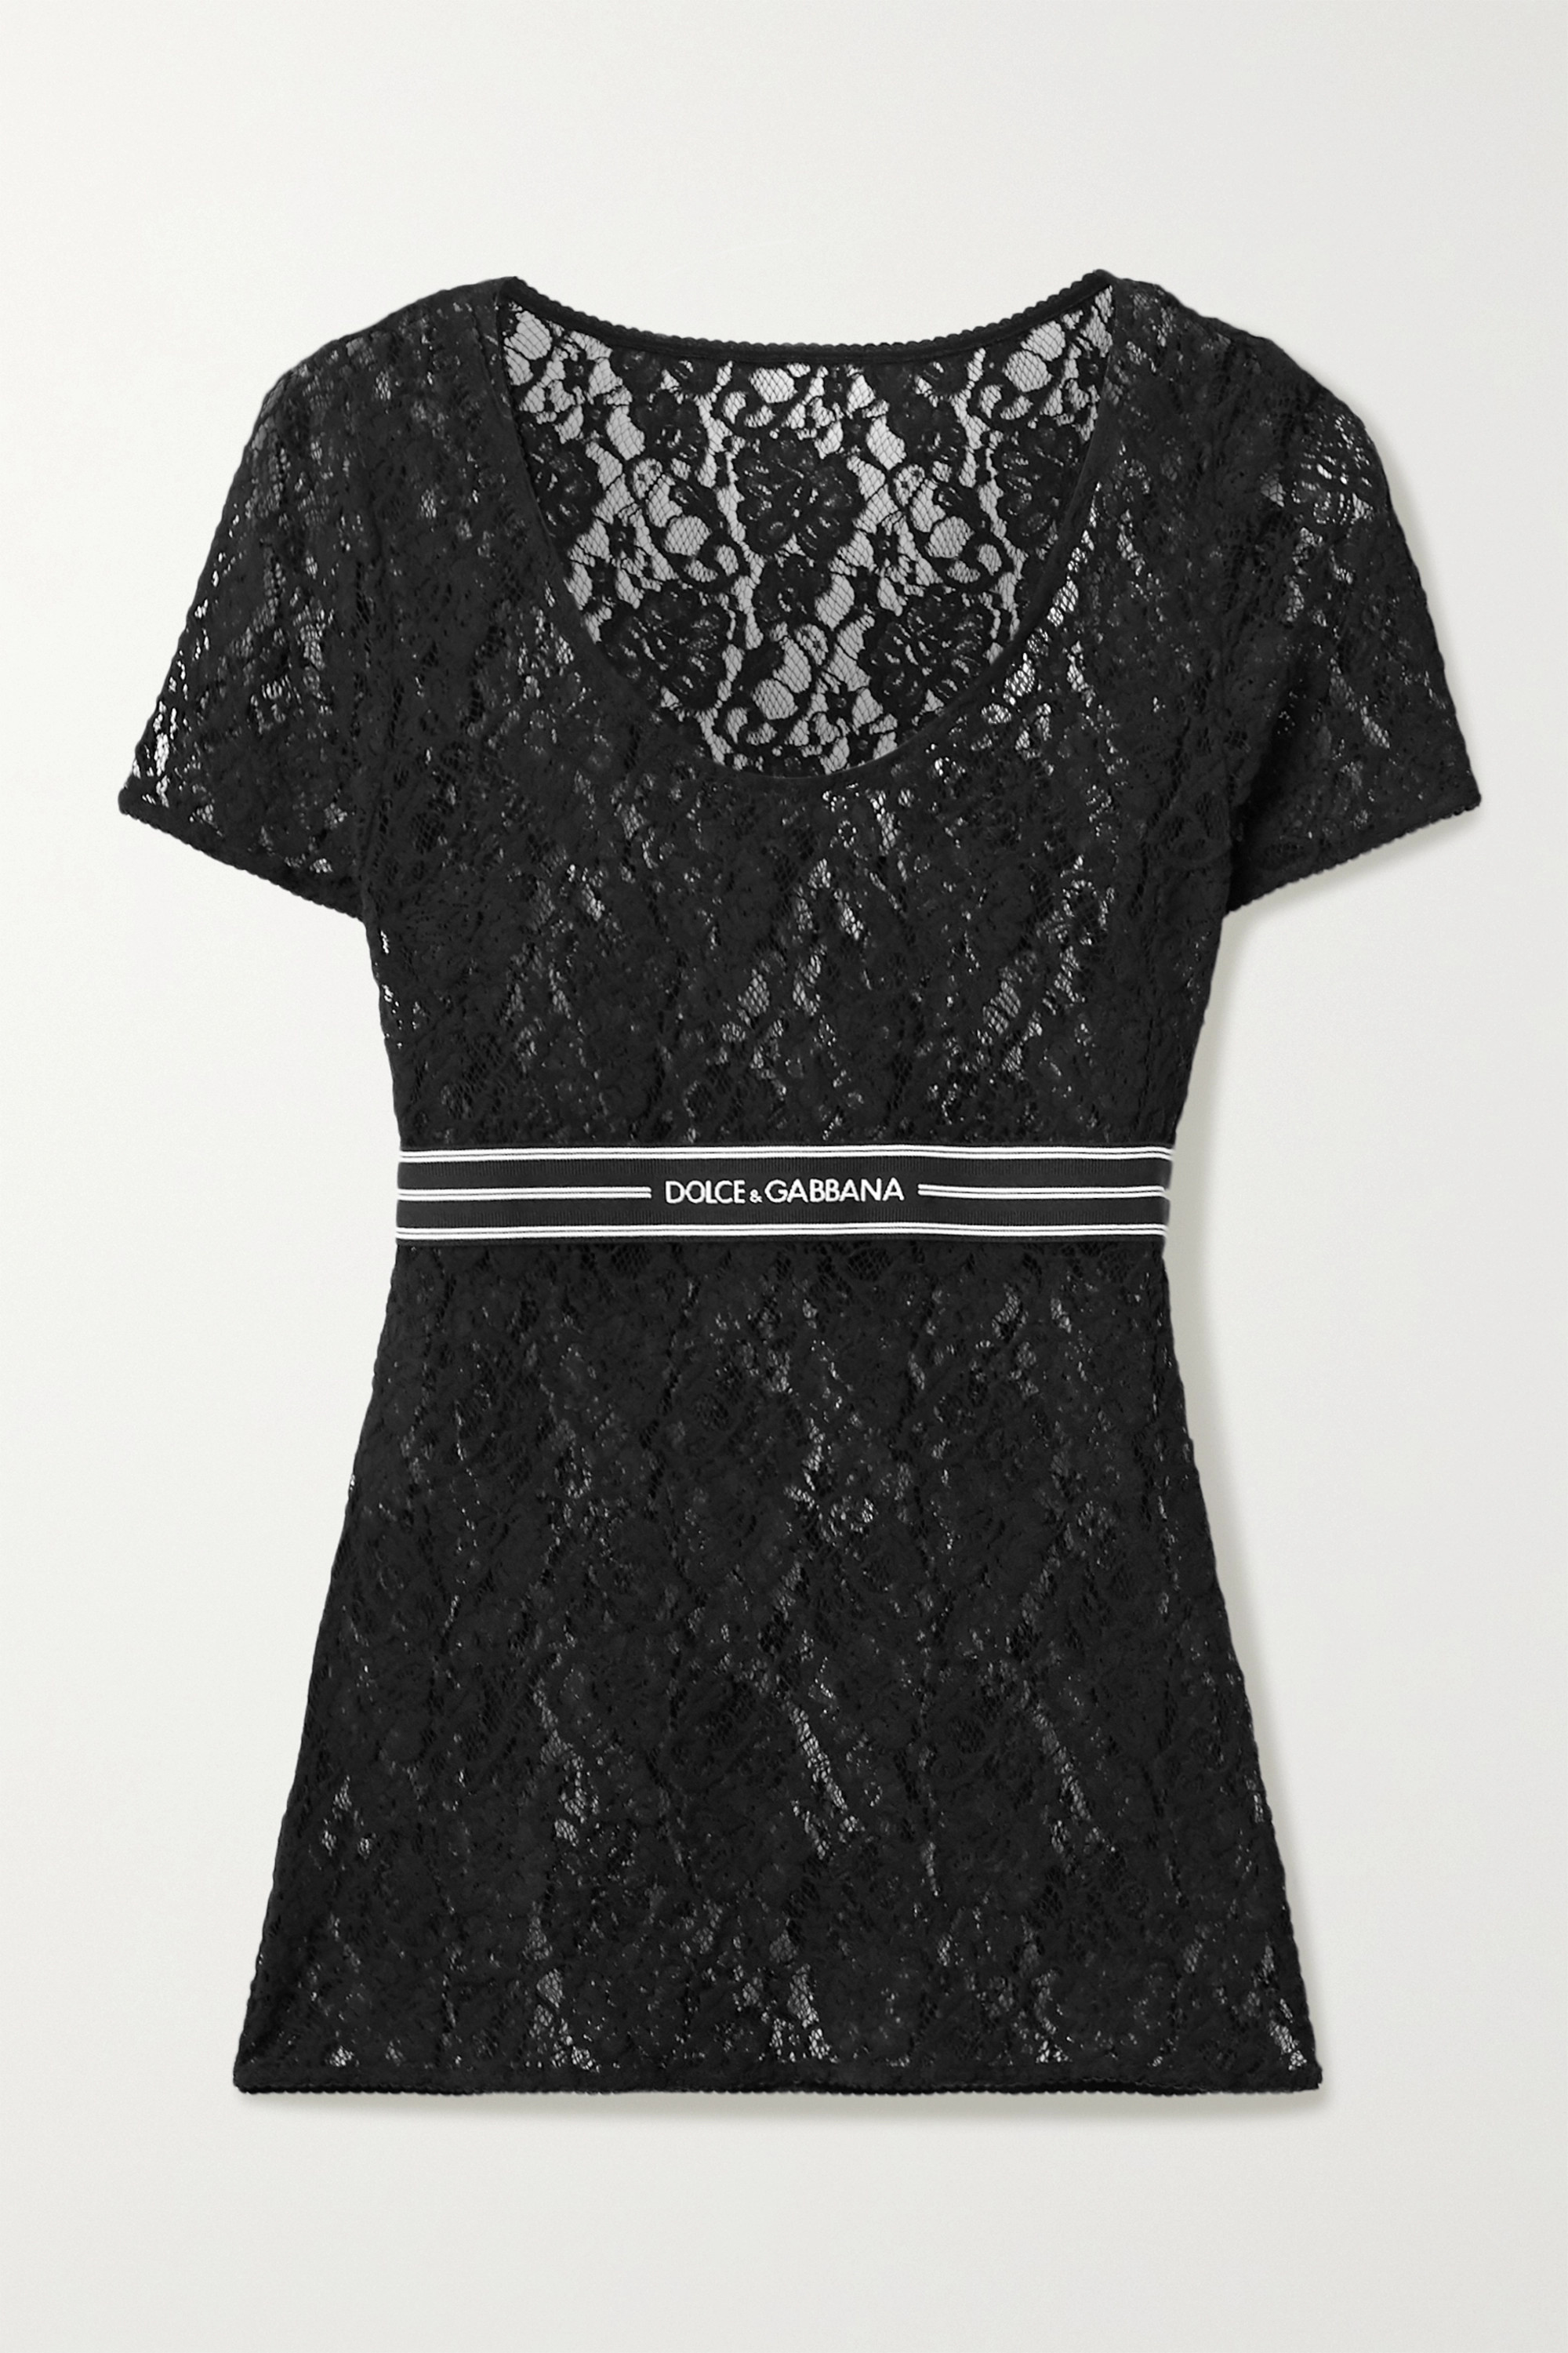 Dolce & Gabbana Jacquard-trimmed lace top